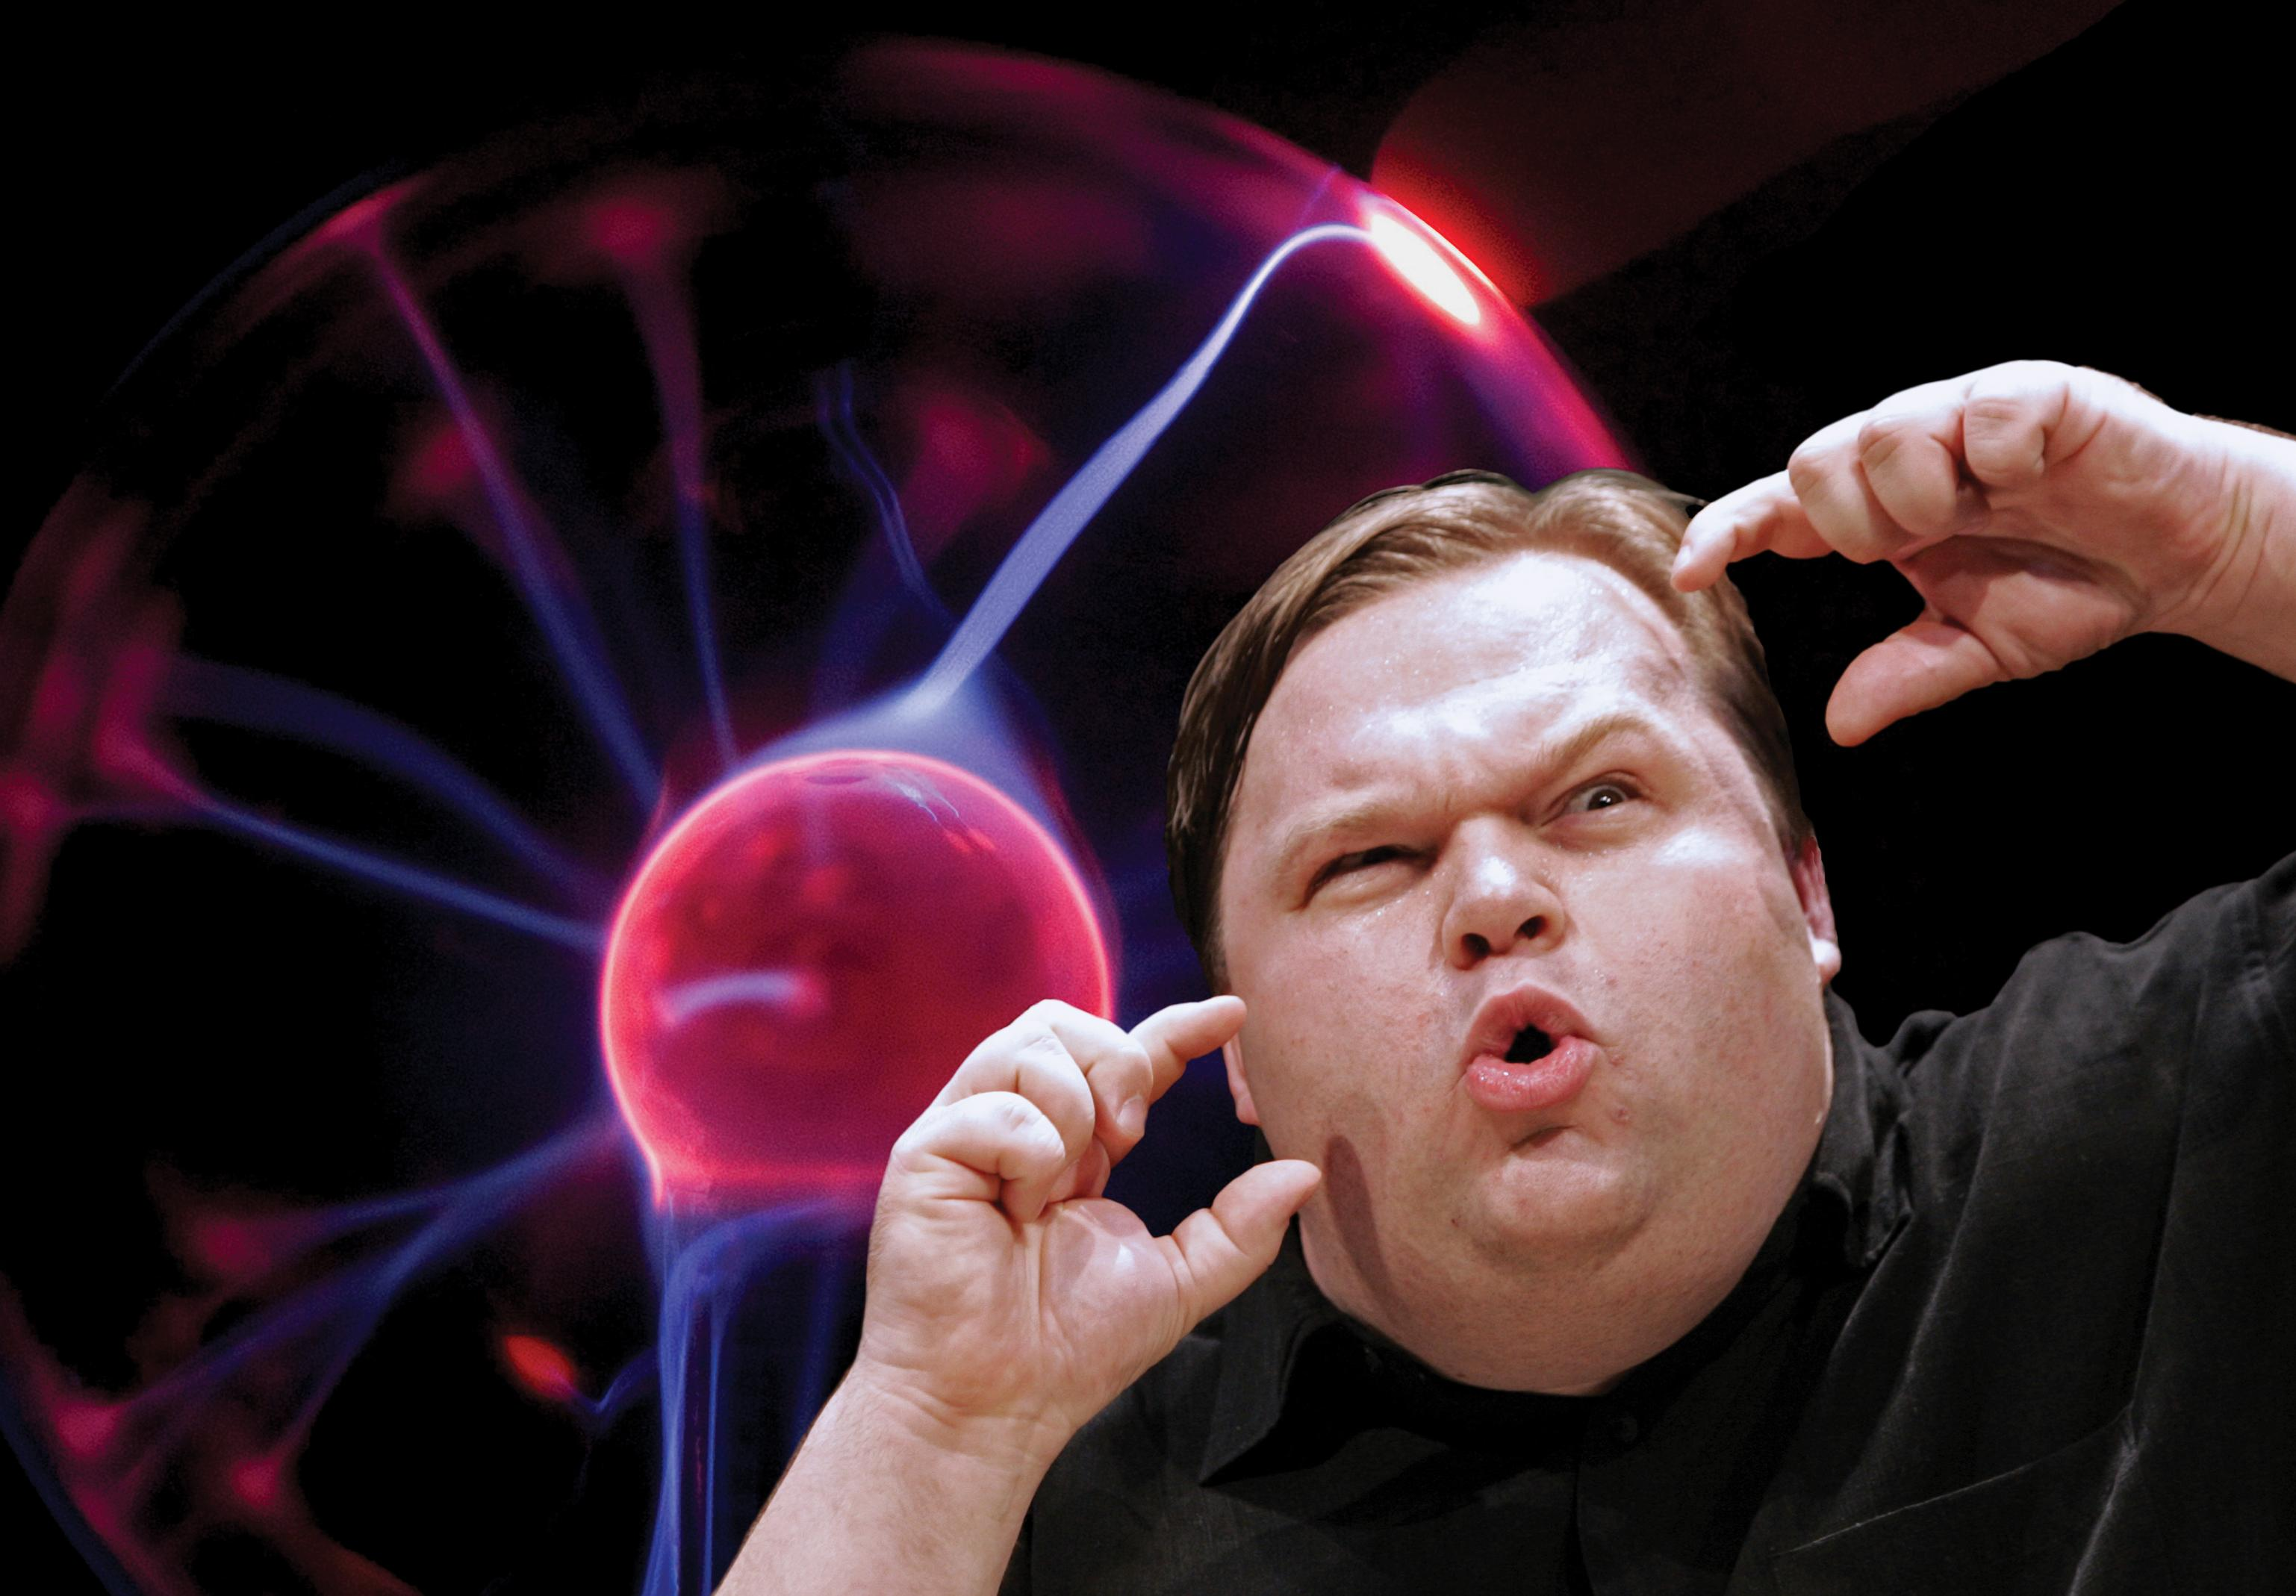 A heavy-set man makes an expressive face with one eyebrow raised and mouth puckered, holding his hands close to his face. Behind him is a clear glass globe emitting pink and purple electricity.